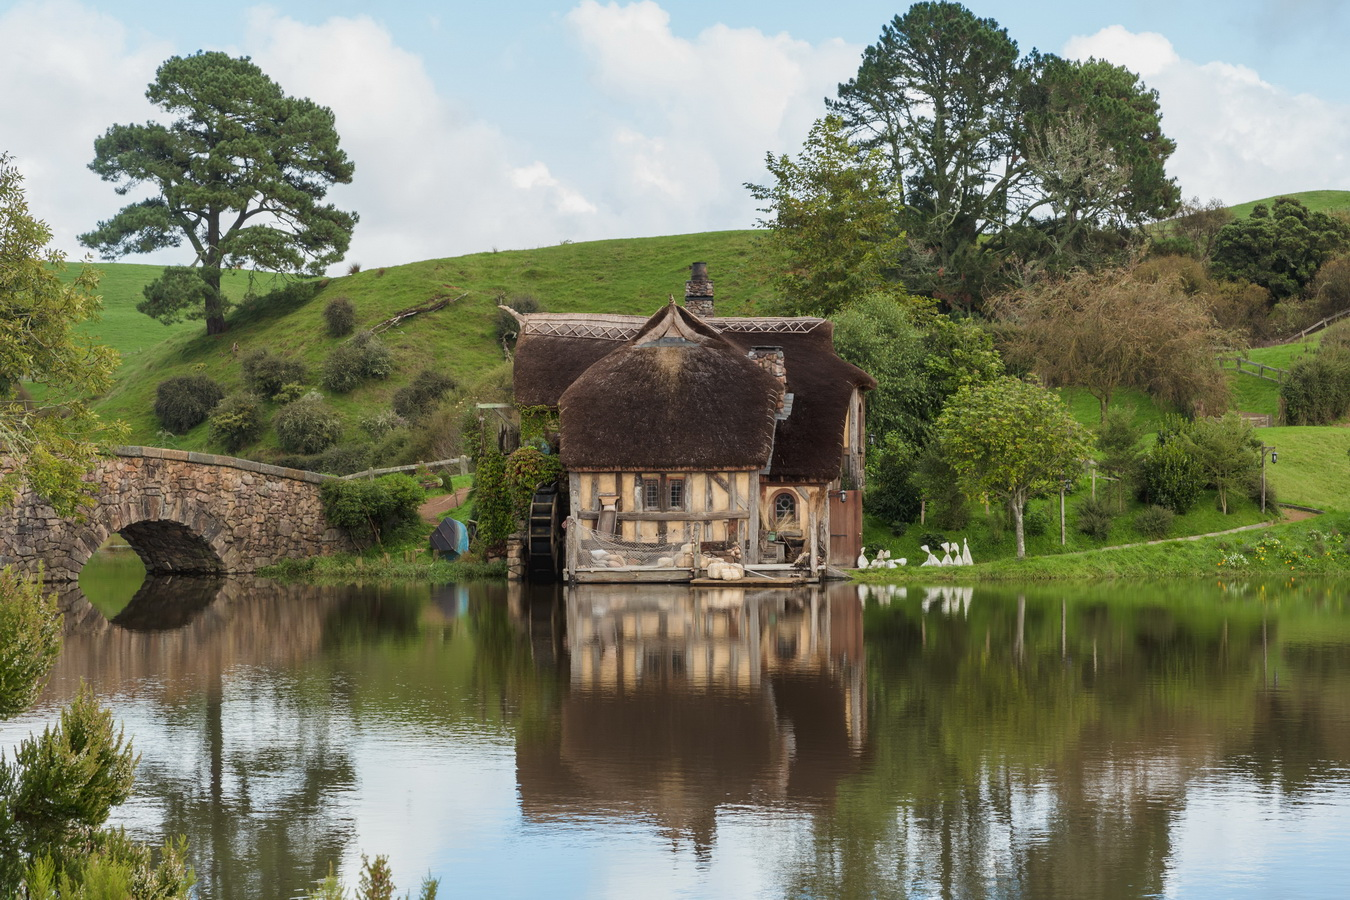 mill,lake,The Hobbiton, The Shire,Хоббитшир, Удел, Хоббитания, Заселье, Край,Matamata, North Island ,New Zealand